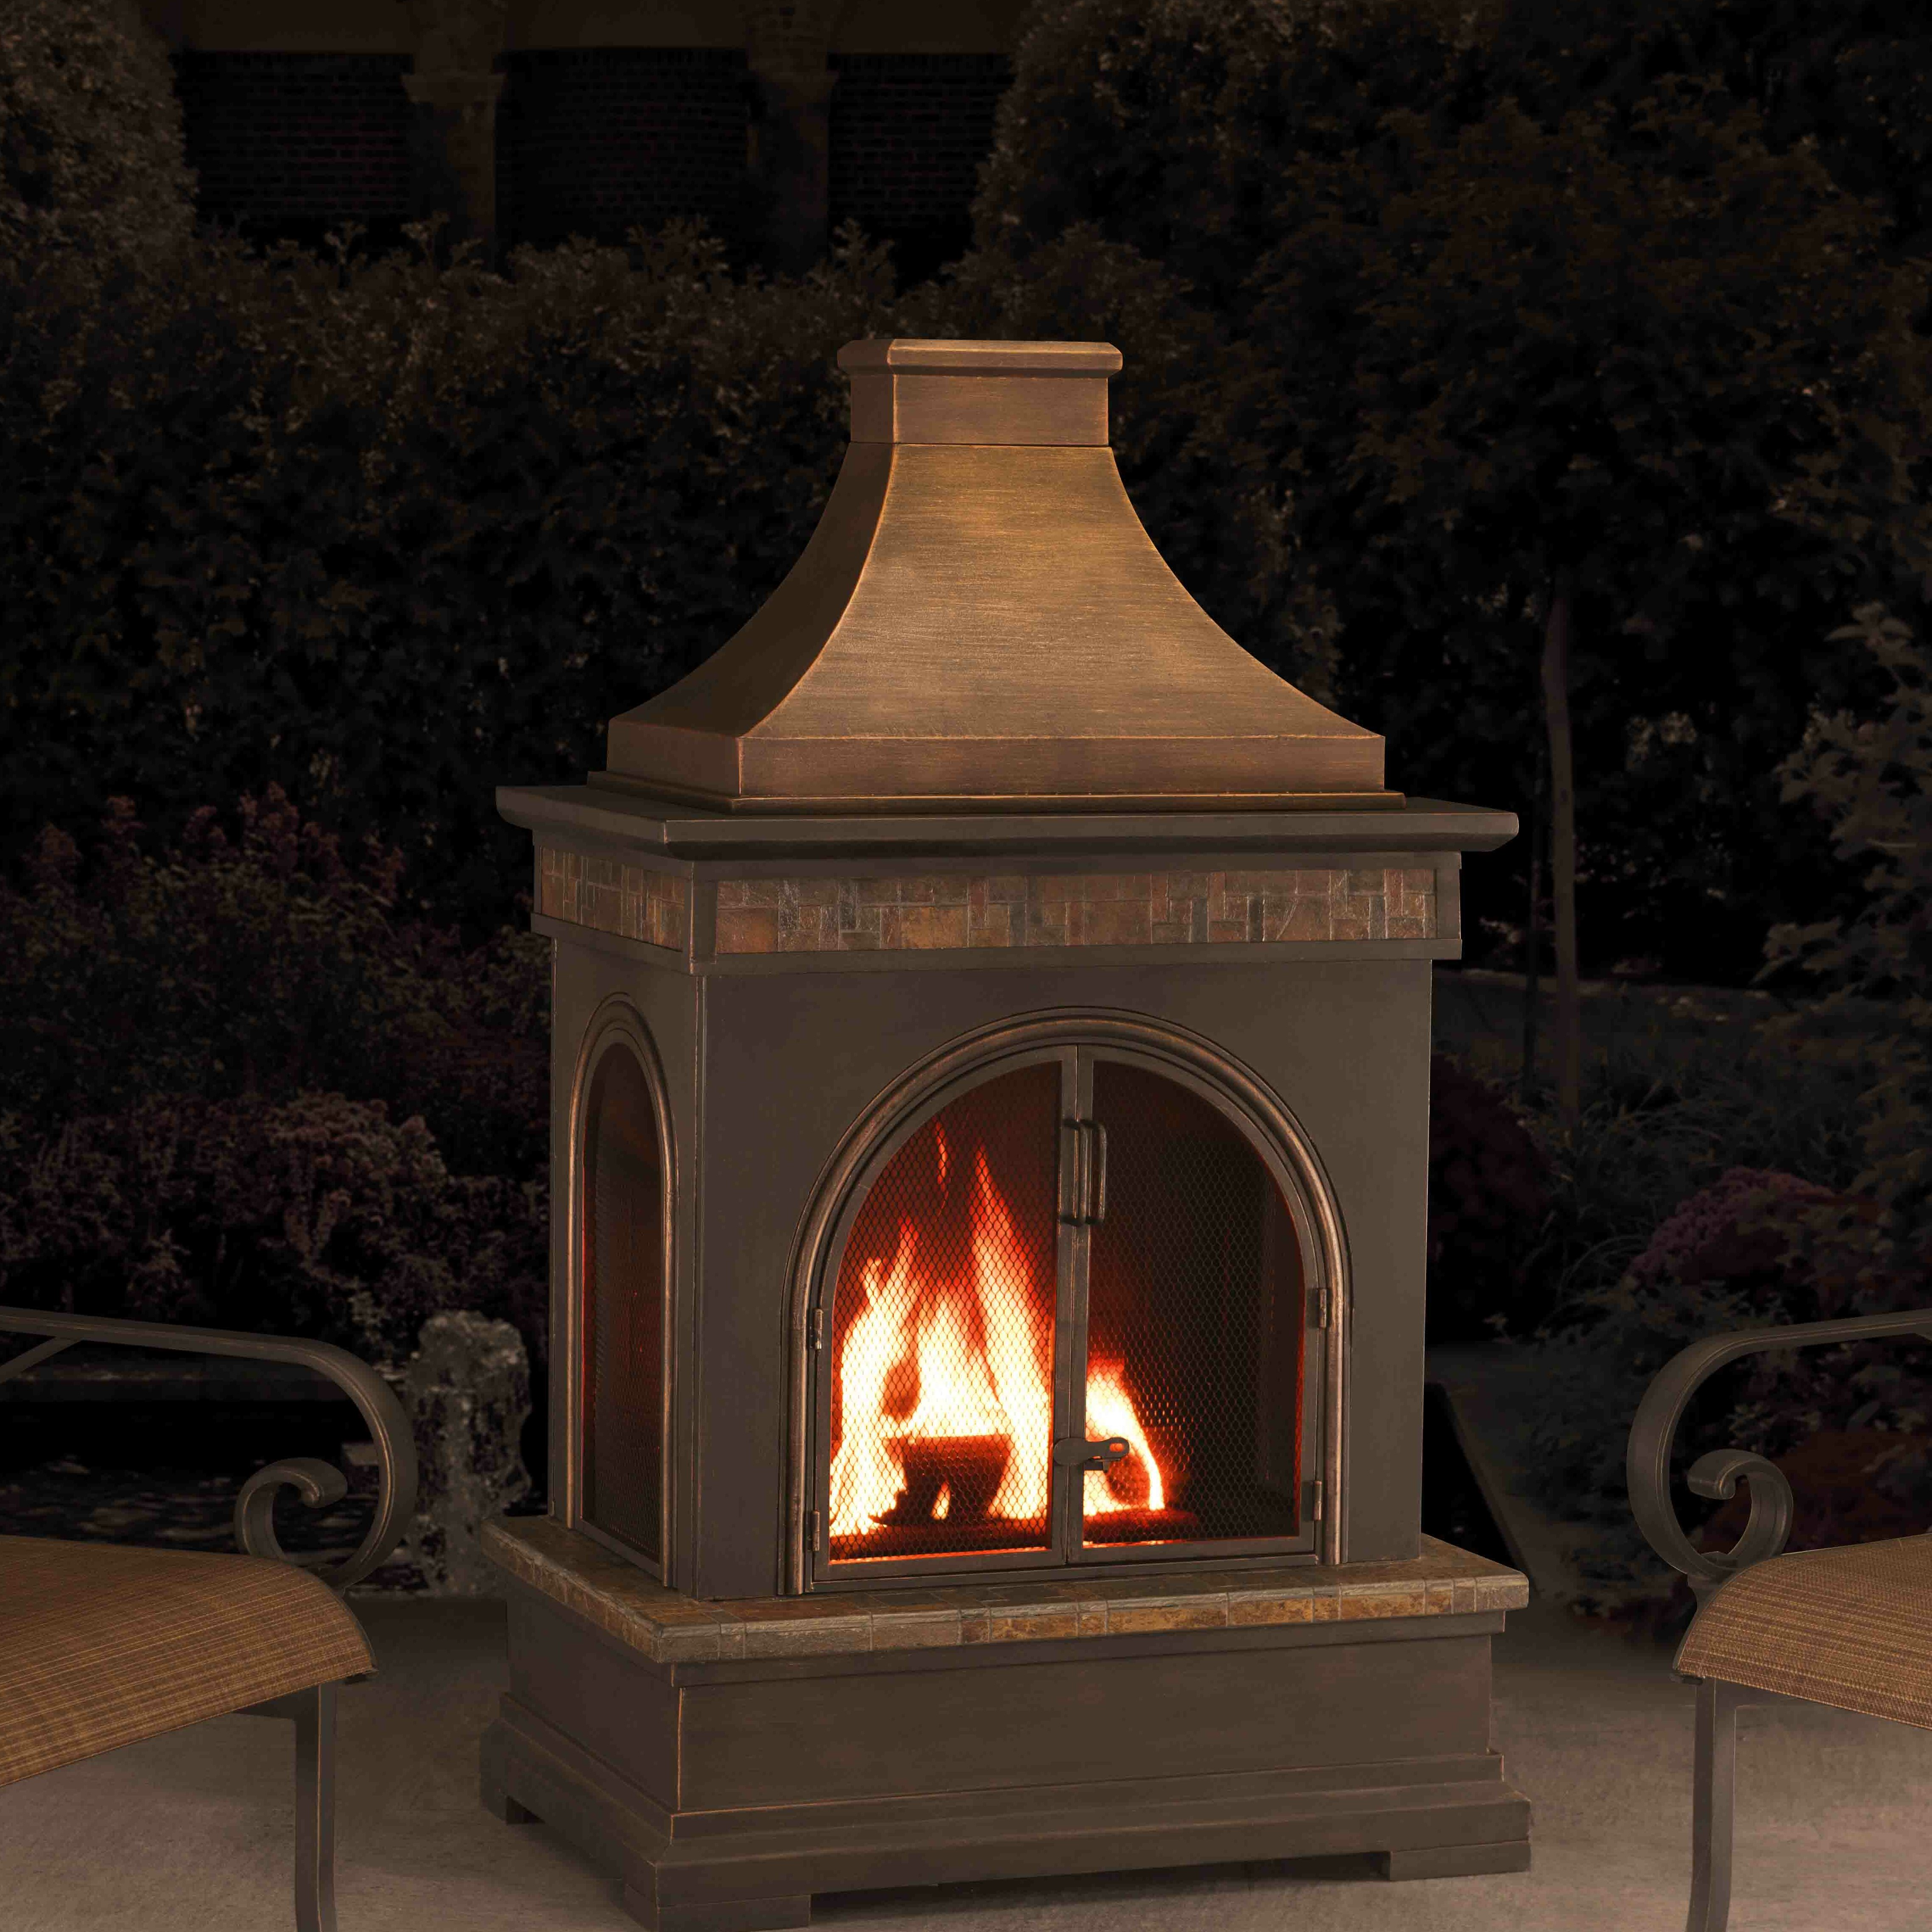 ideas pictures and backyard outdoor oven designs attractive including cost patio fireplace pizza